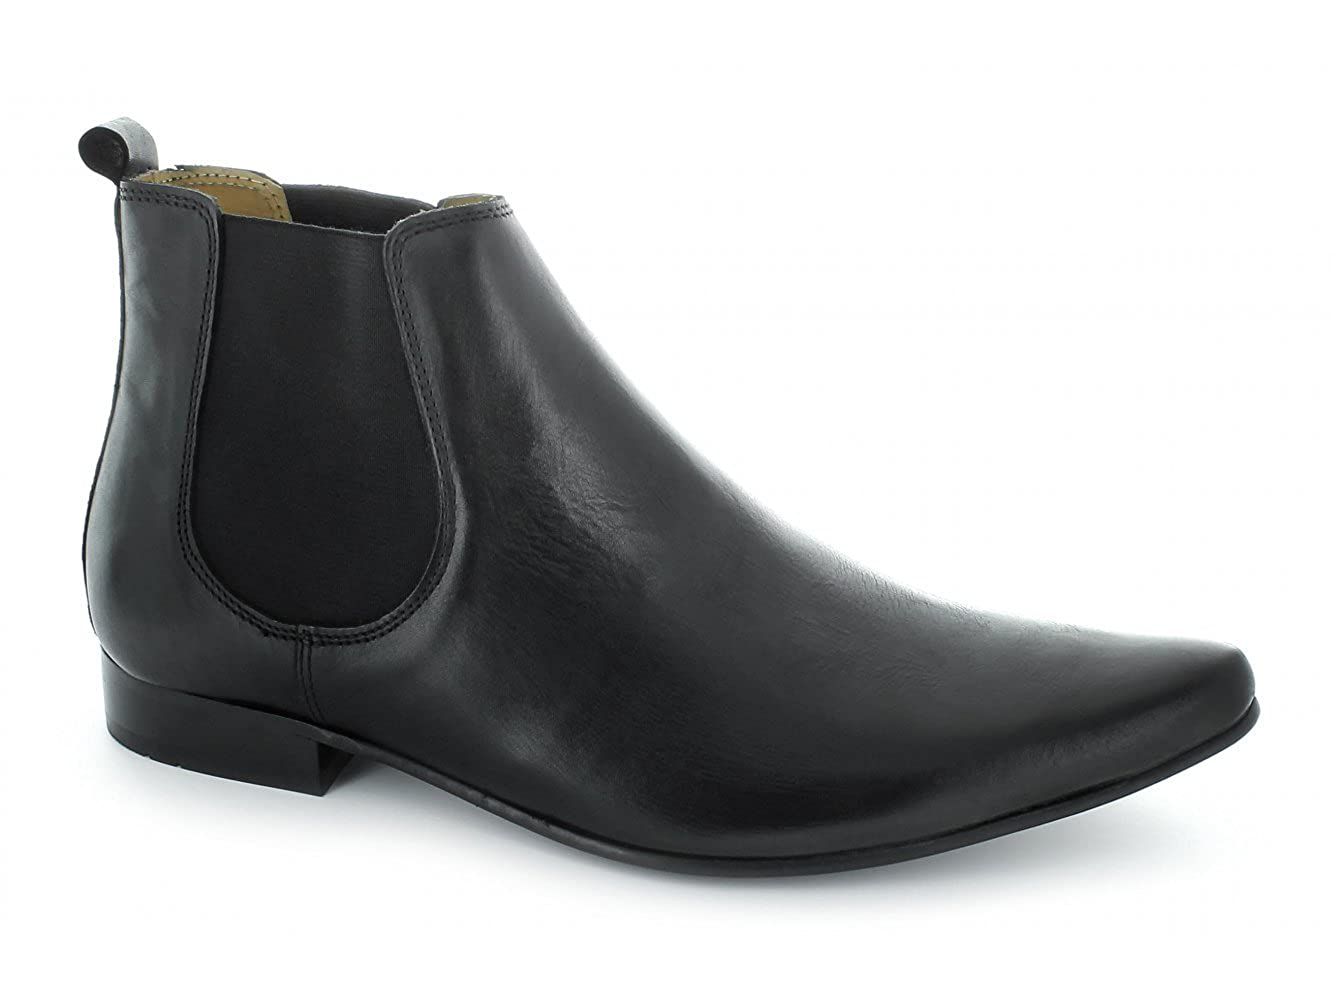 Vintage Inspired Dresses & Clothing UK Ikon SLY Mens Leather Pointed Chelsea Boots Black £55.63 AT vintagedancer.com